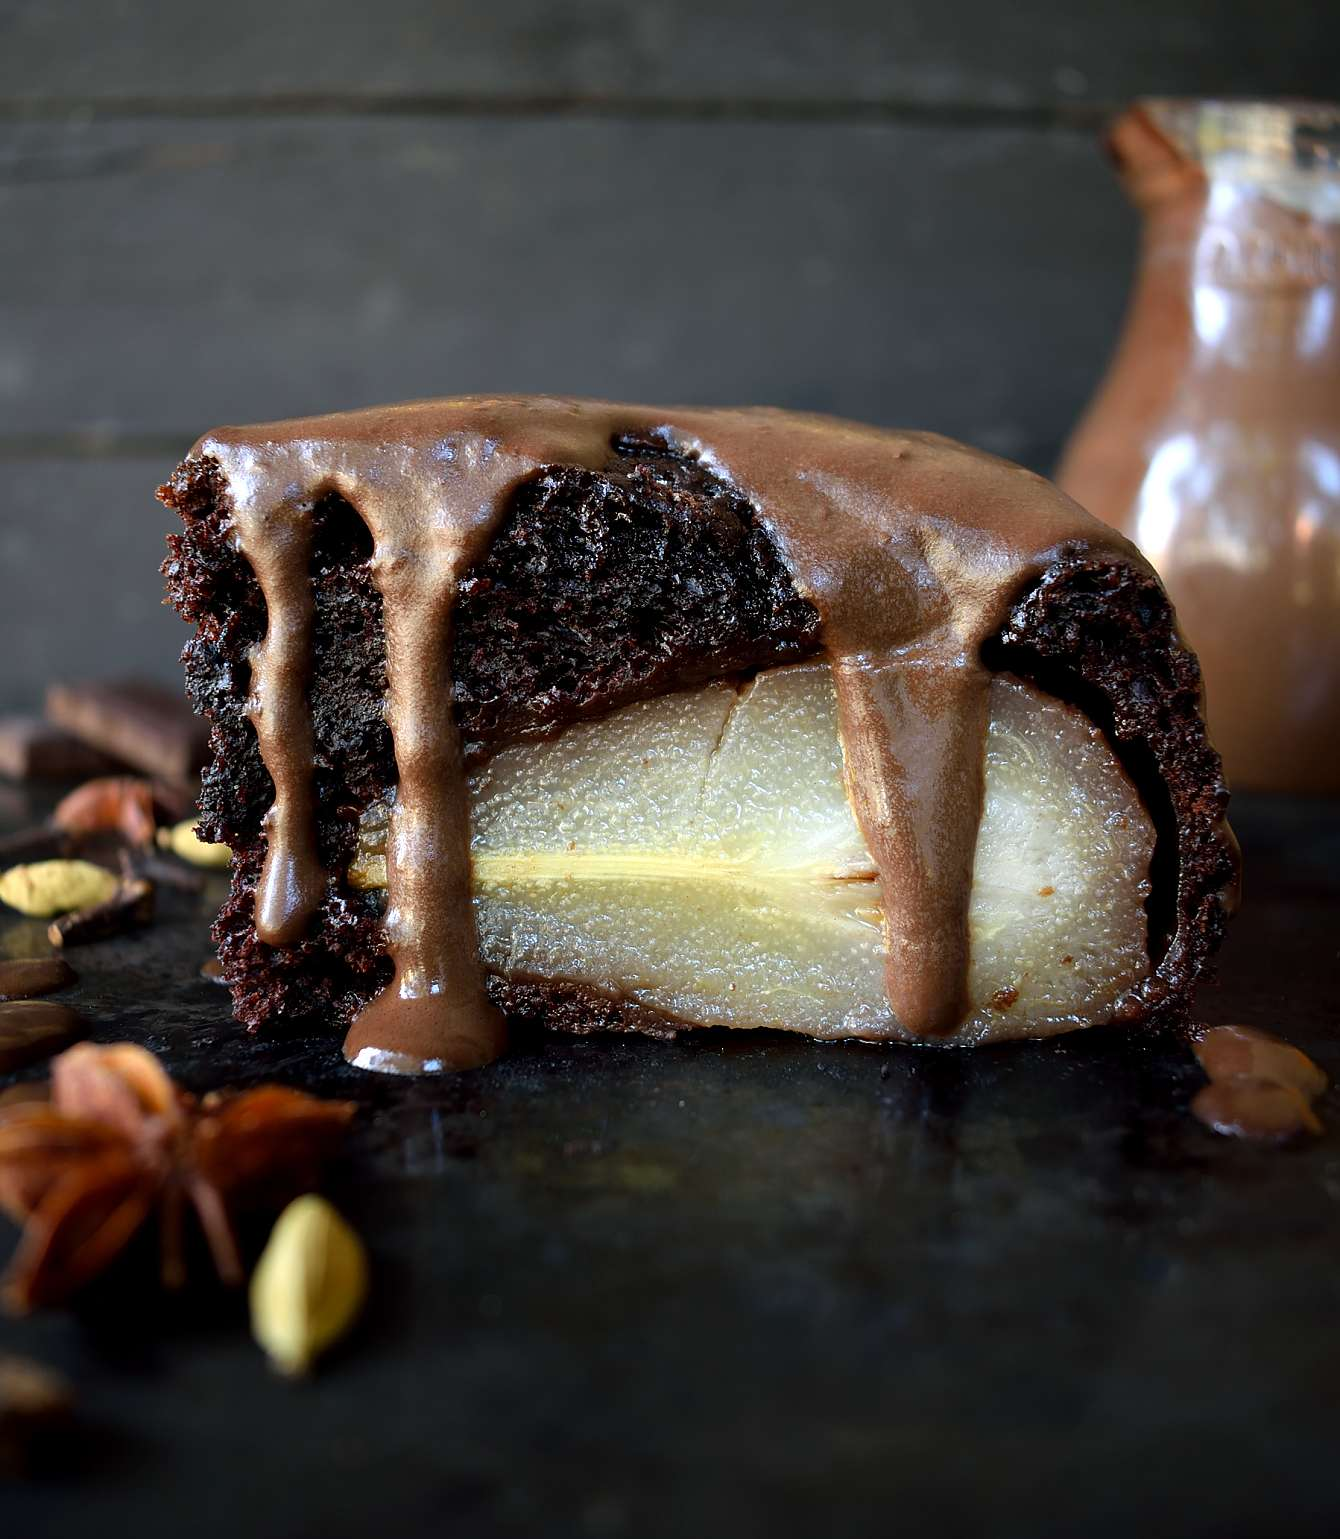 Vegan chocolate cake with poached pears is much easier than it looks. Pears poached in red wine and spices then baked into the middle of a moist chocolate cake and drizzled with chocolate sauce. An impressive and delicious vegan dessert.